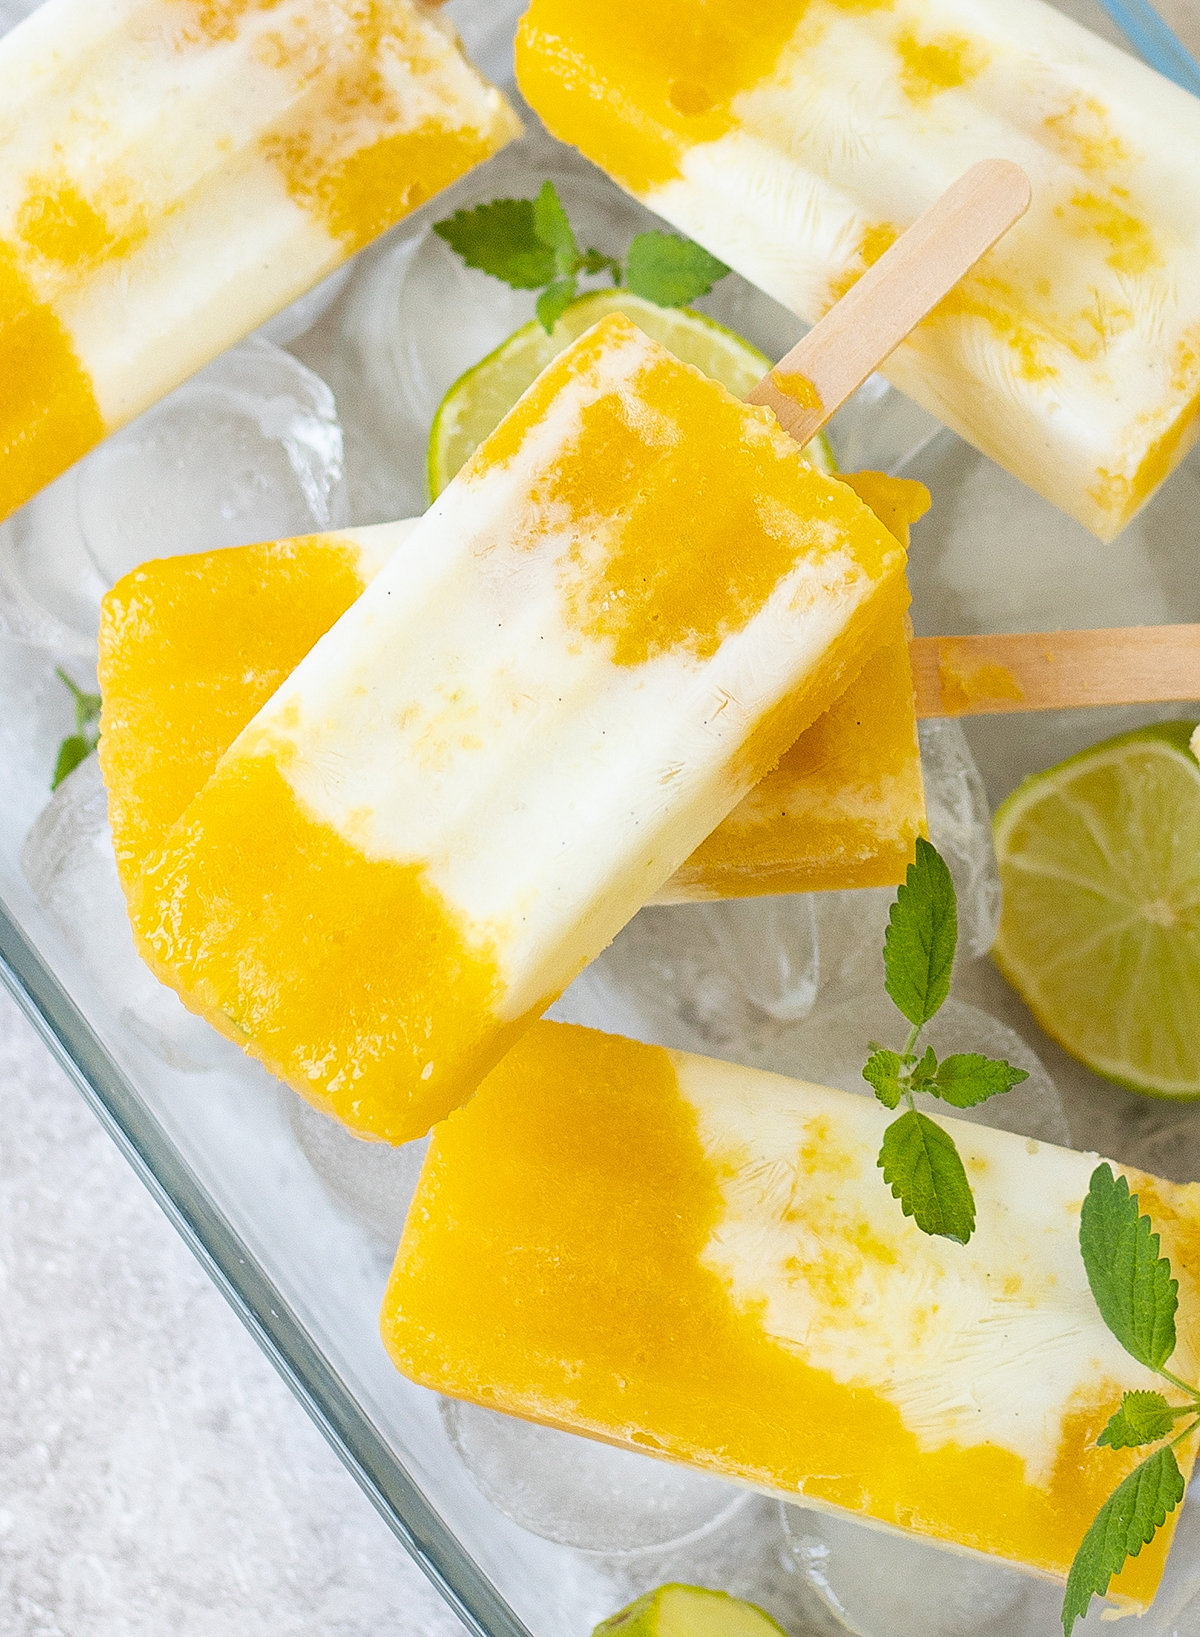 Mango, Lime, and Coconut Popsicles Recipe